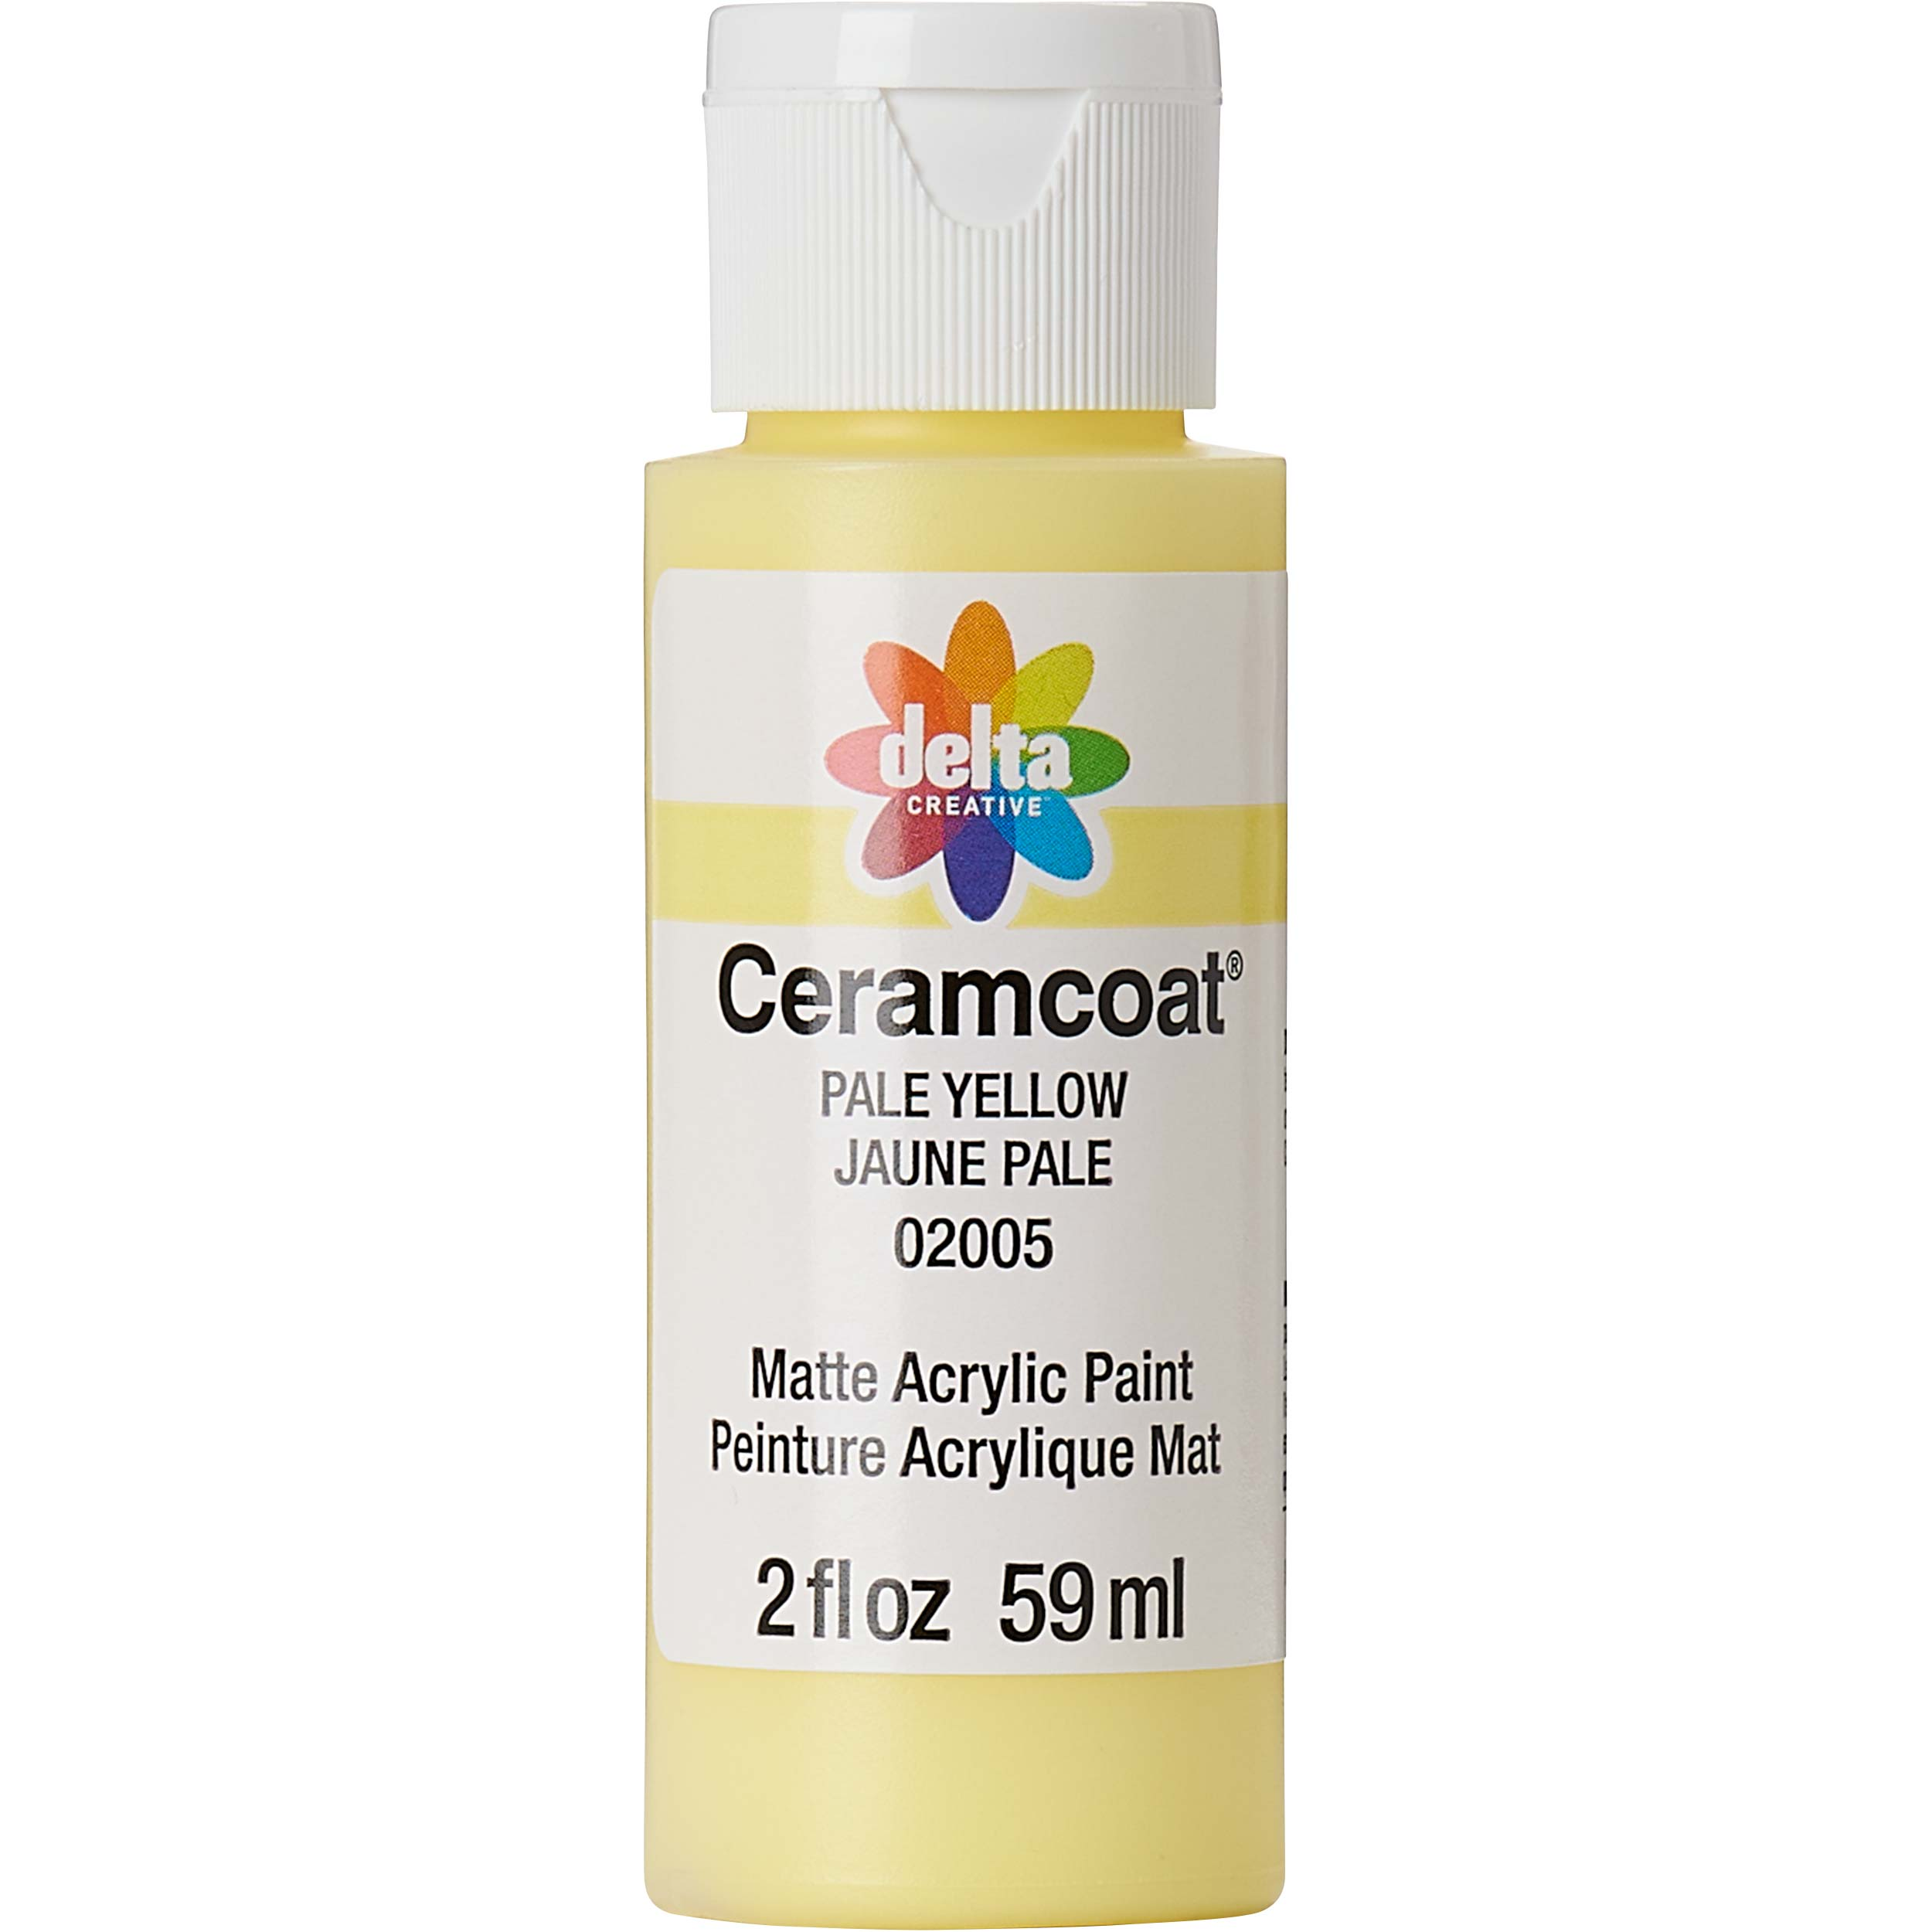 Delta Ceramcoat ® Acrylic Paint - Pale Yellow, 2 oz. - 020050202W